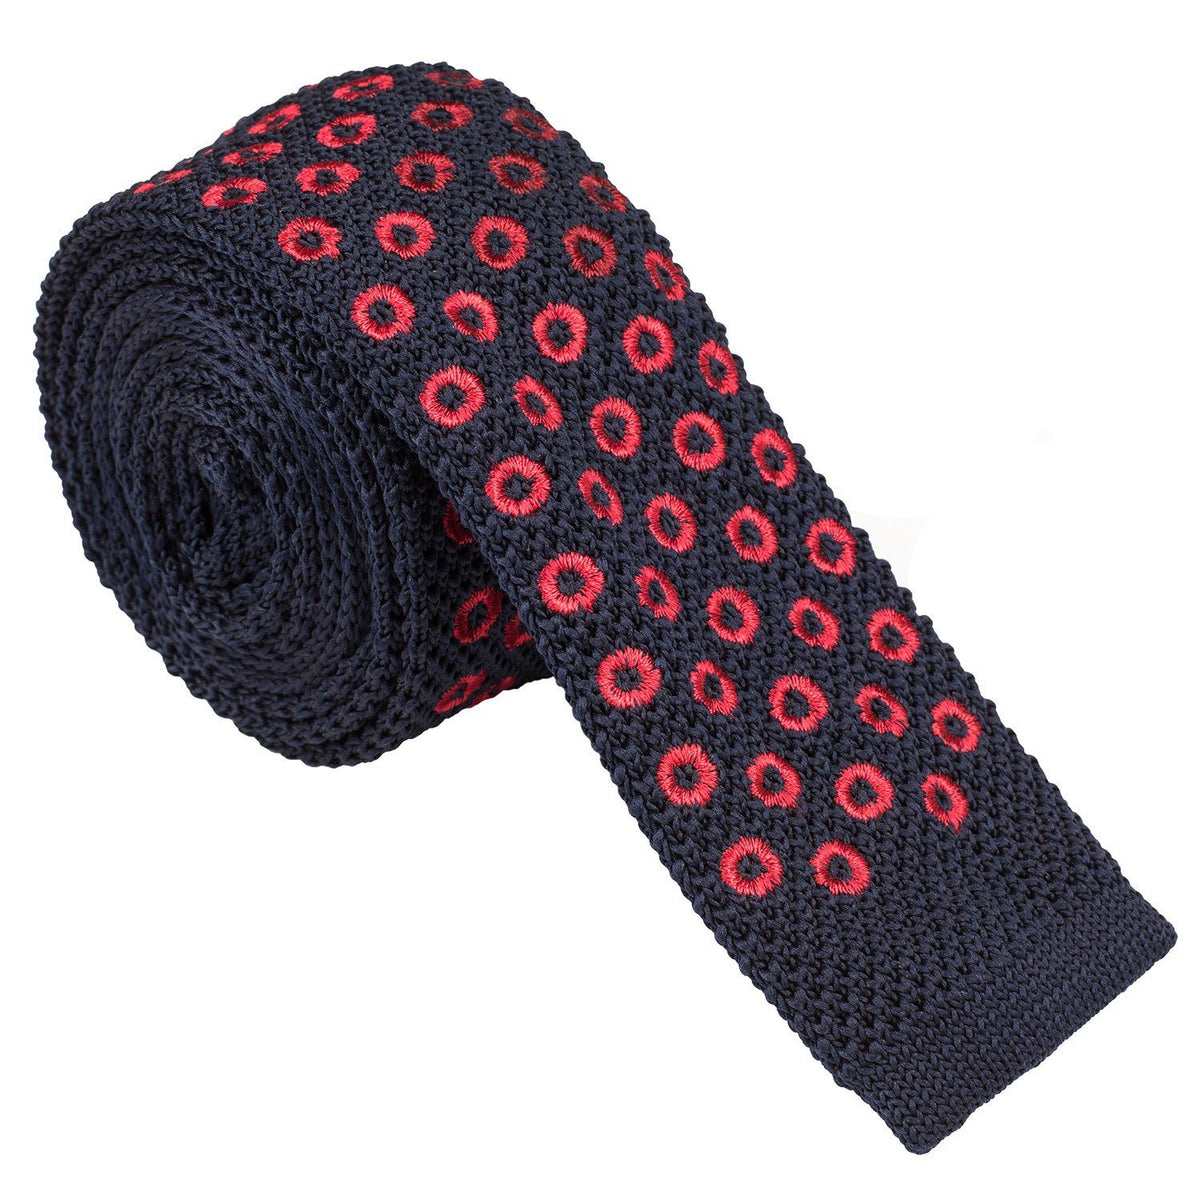 Donut Knit Tie - Section 119